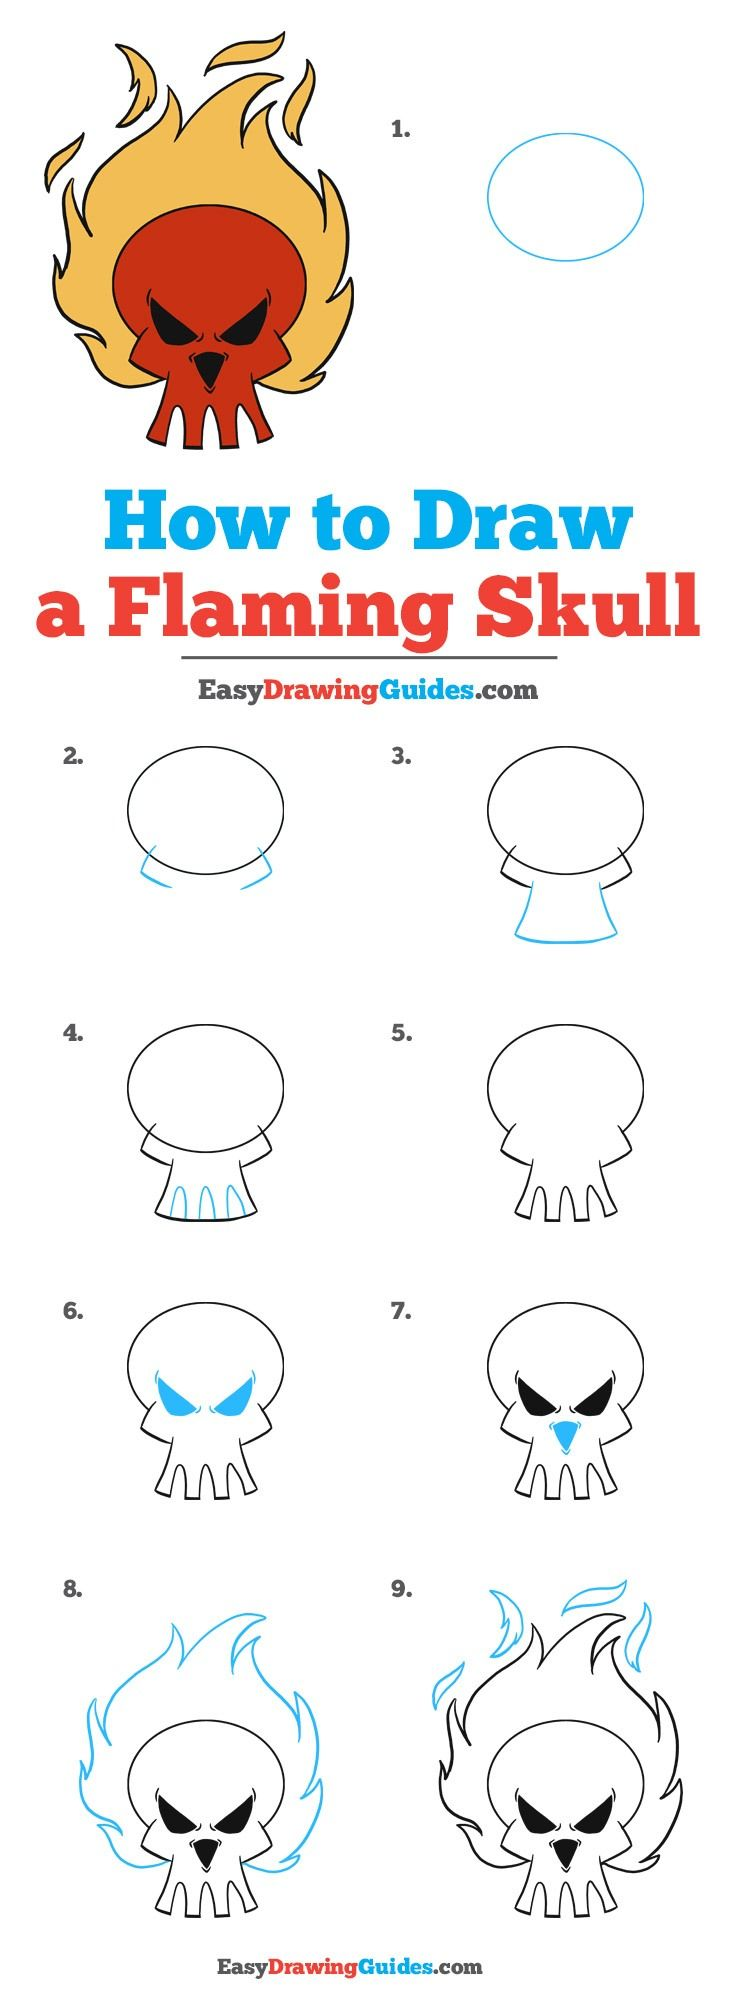 Learn How to Draw a Flaming Skull: Easy Step-by-Step Drawing Tutorial for Kids and Beginners. #FlamingSkull #drawingtutorial #easydrawing See the full tutorial at https://easydrawingguides.com/how-to-draw-flaming-skull/.